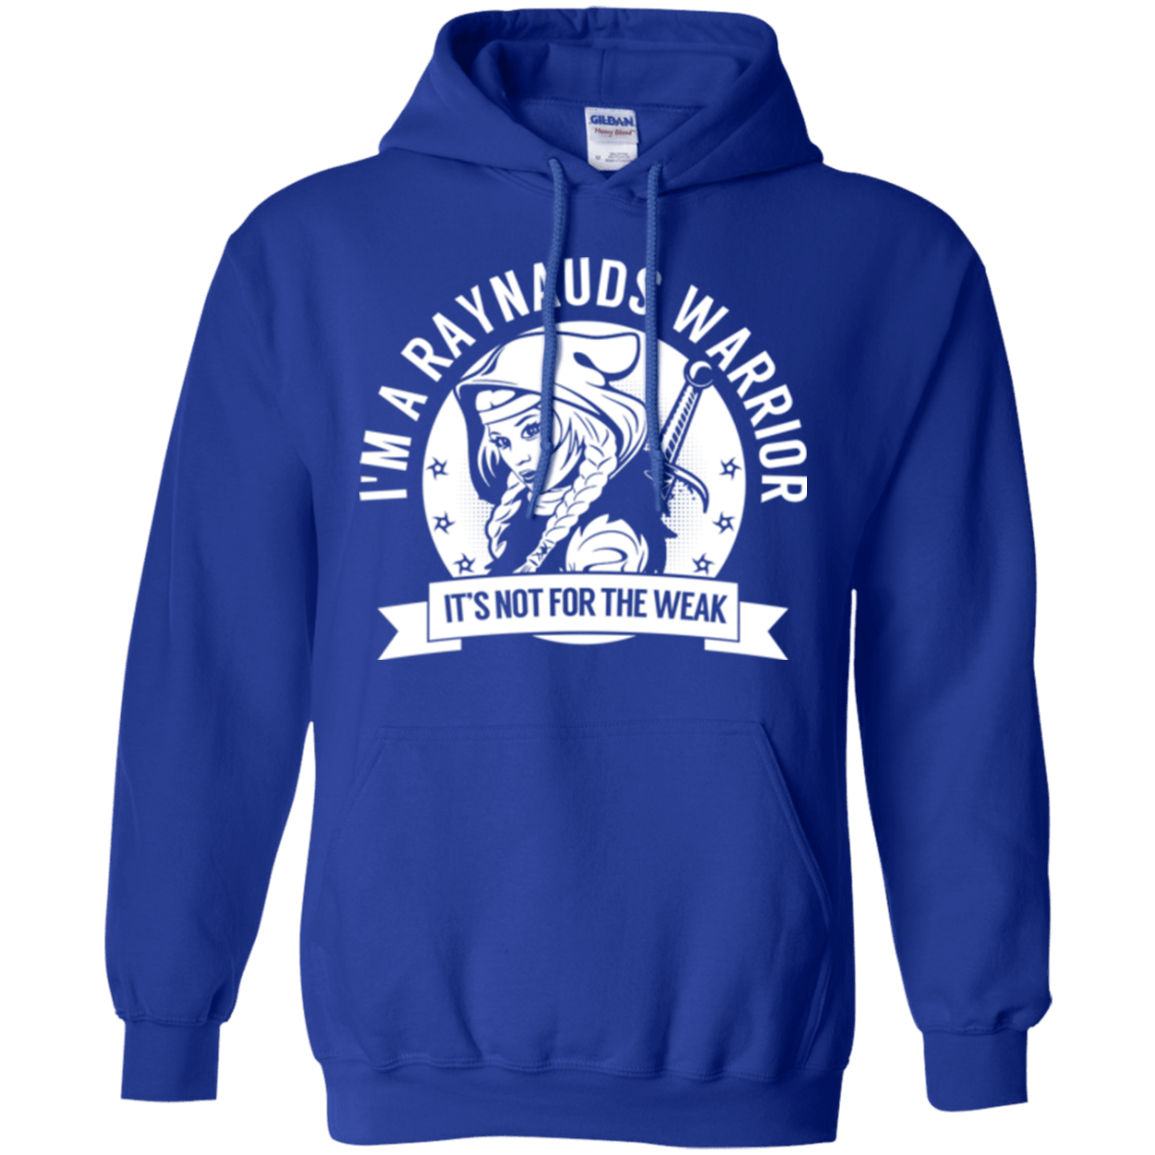 Raynaud's Disease - Raynauds Warrior Hooded Pullover Hoodie 8 oz. - The Unchargeables